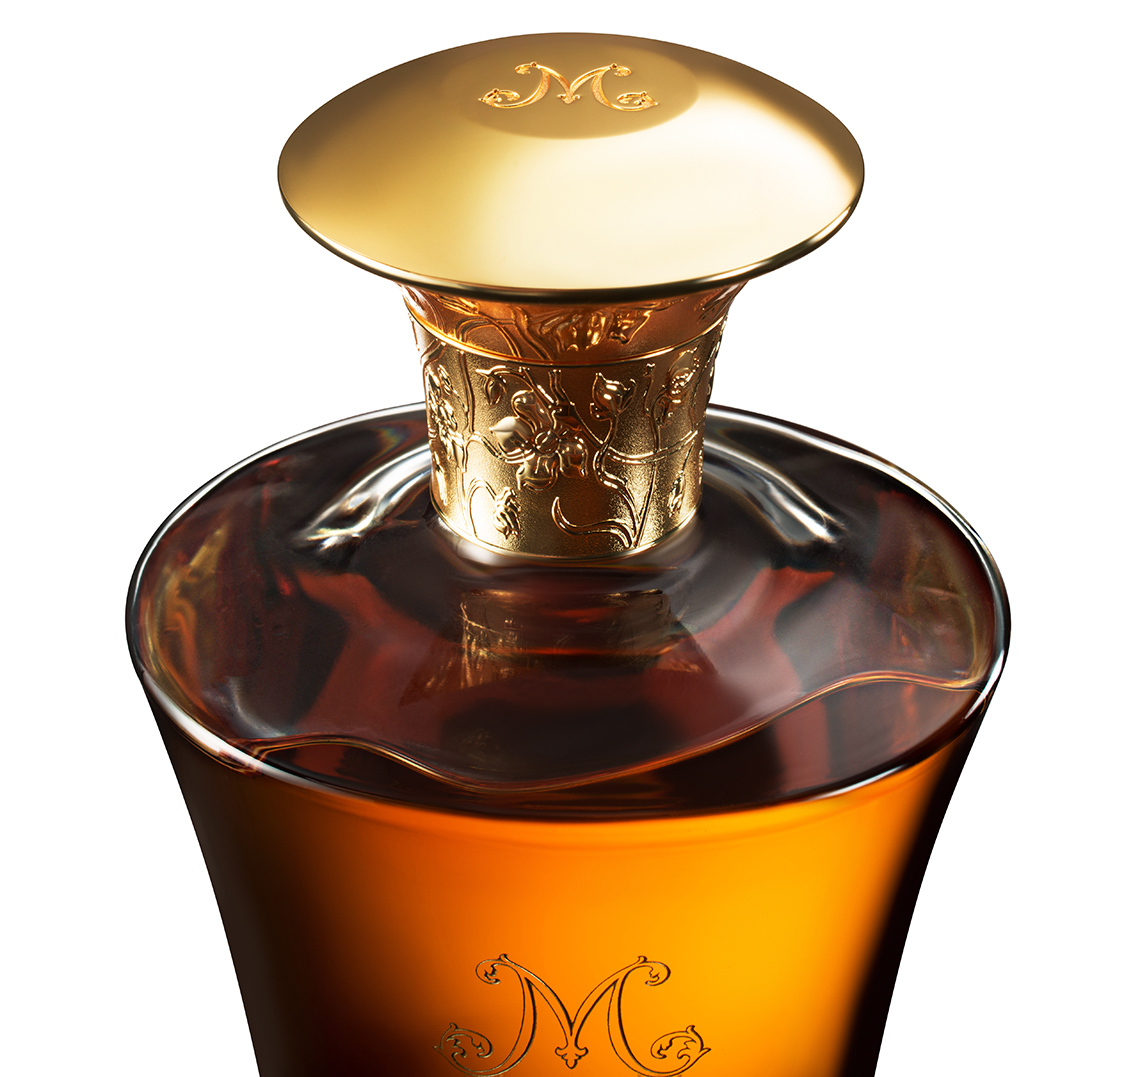 New-york-Liquid-phtography-beverage-Phtography-Cognac-close-up